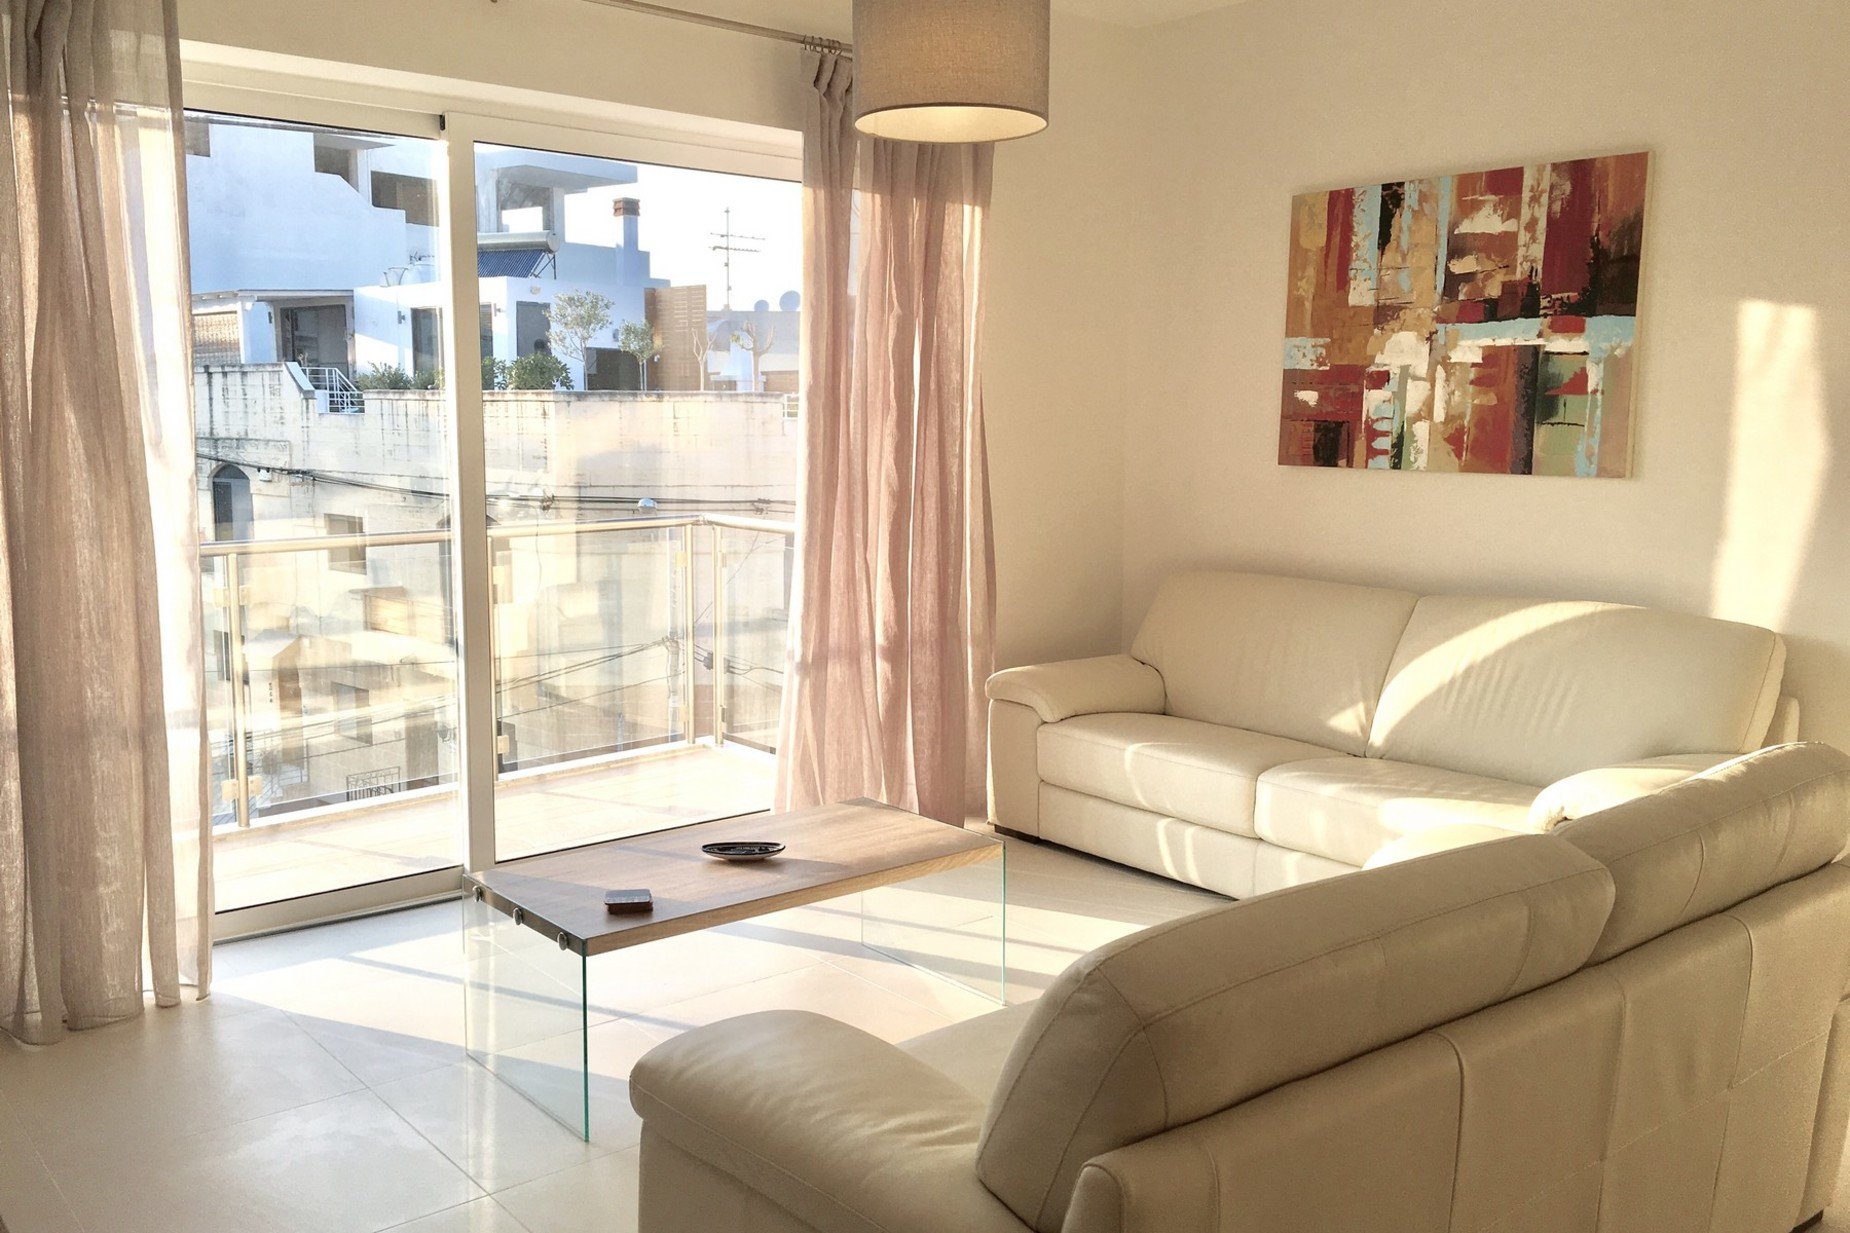 3 bed Apartment For Rent in Ibragg, Ibragg - thumb 7